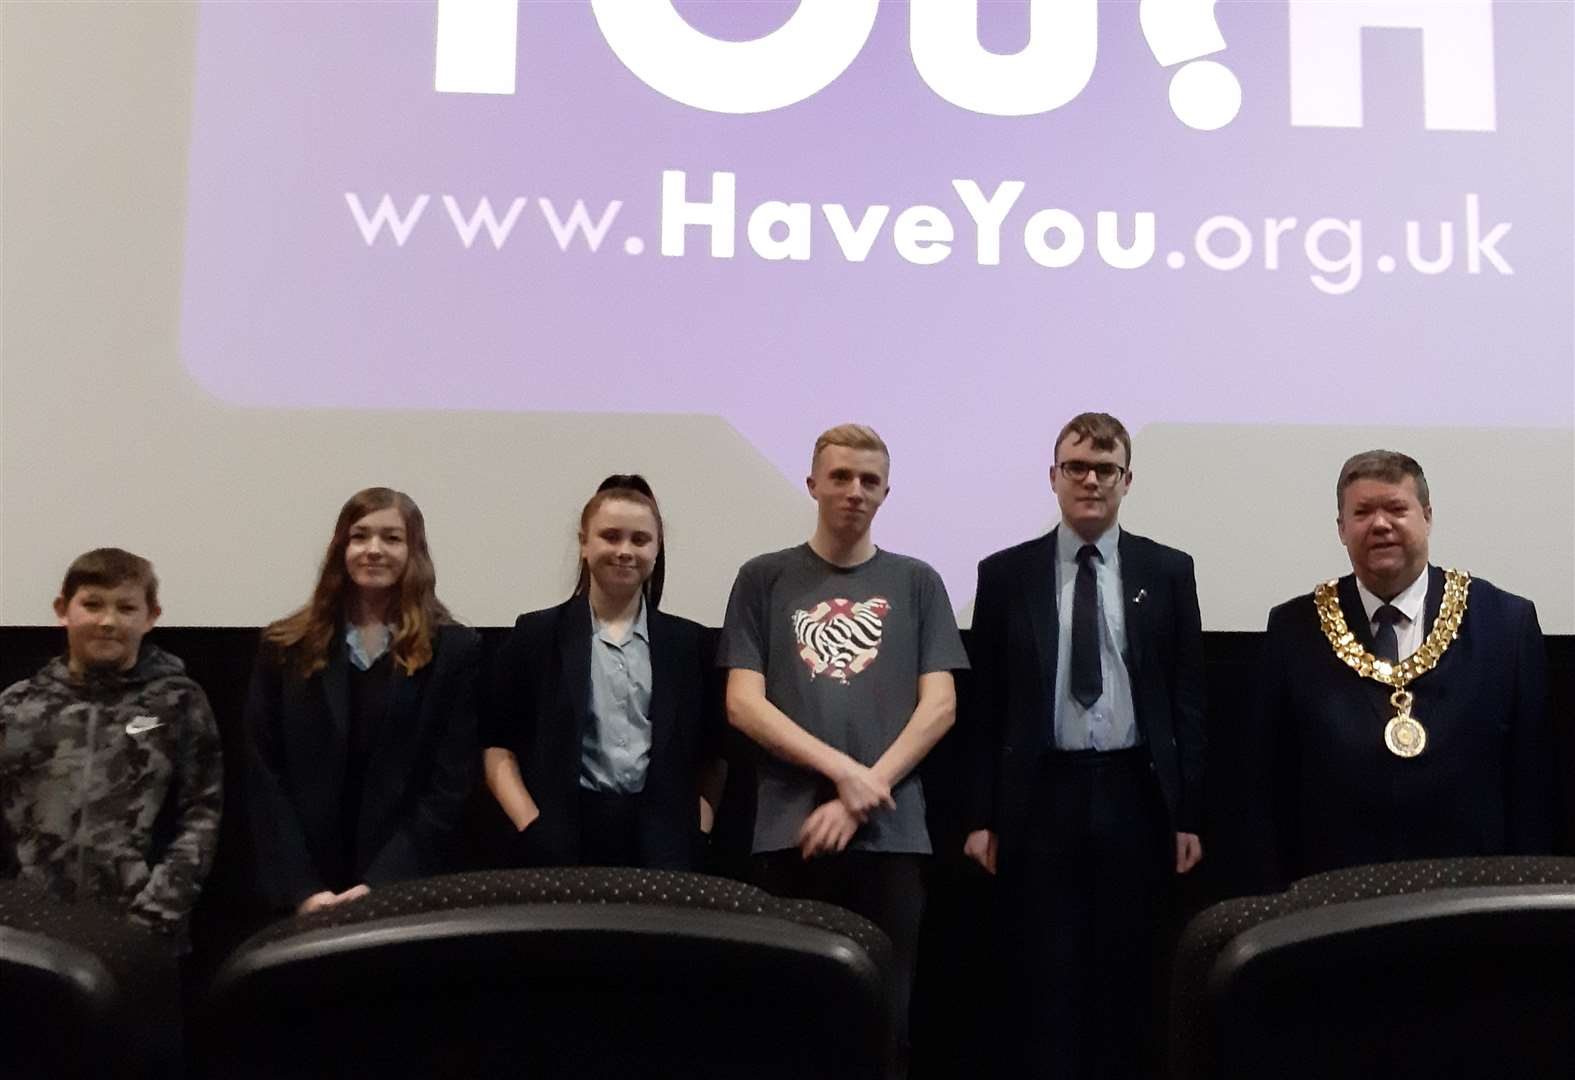 Website managed and led by young people to be launched